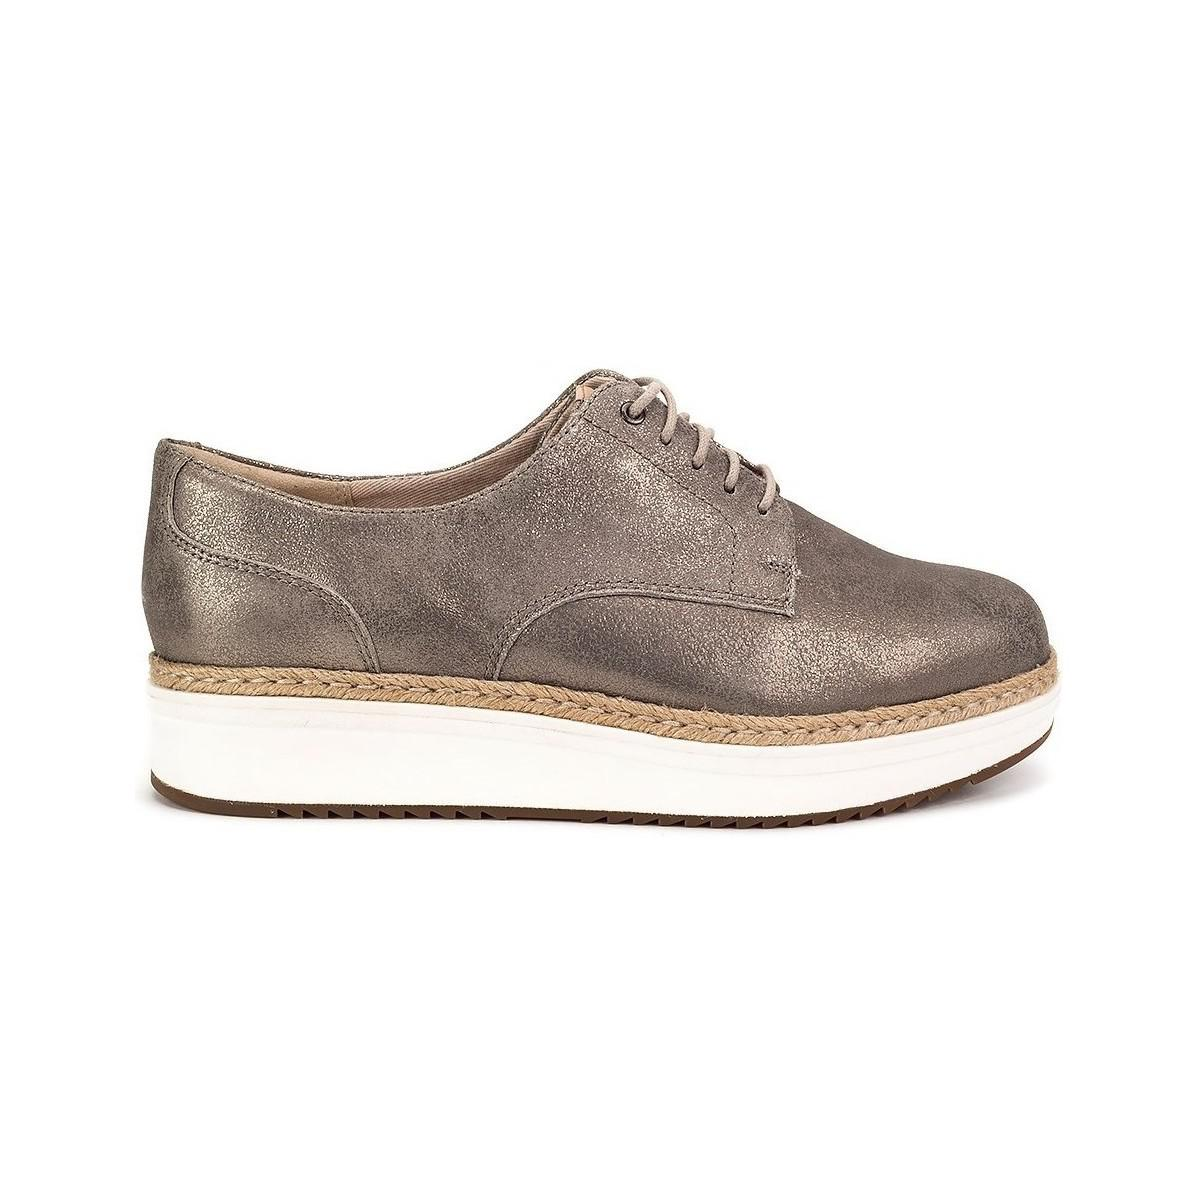 Cheap New Arrival Low Price Fee Shipping For Sale Clarks Teadale Rhea women's Shoes (Trainers) in Prices For Sale Cheap And Nice MWa5b